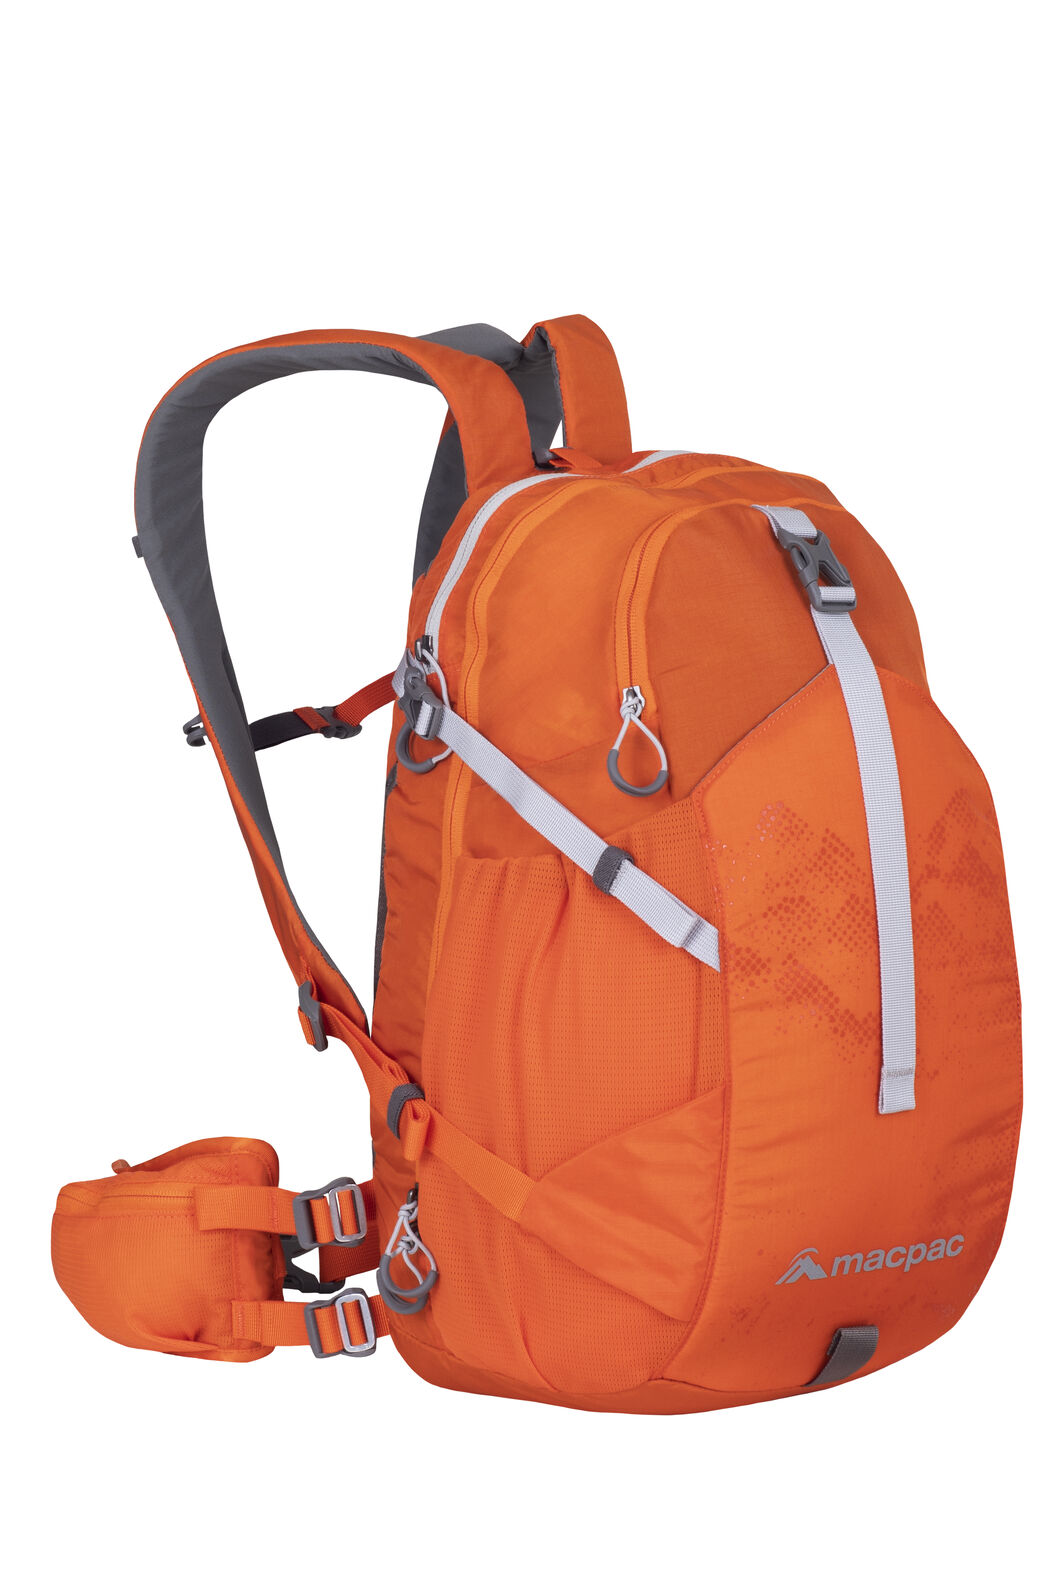 Macpac Mountain Bike 18L Pack, Puffins Bill, hi-res